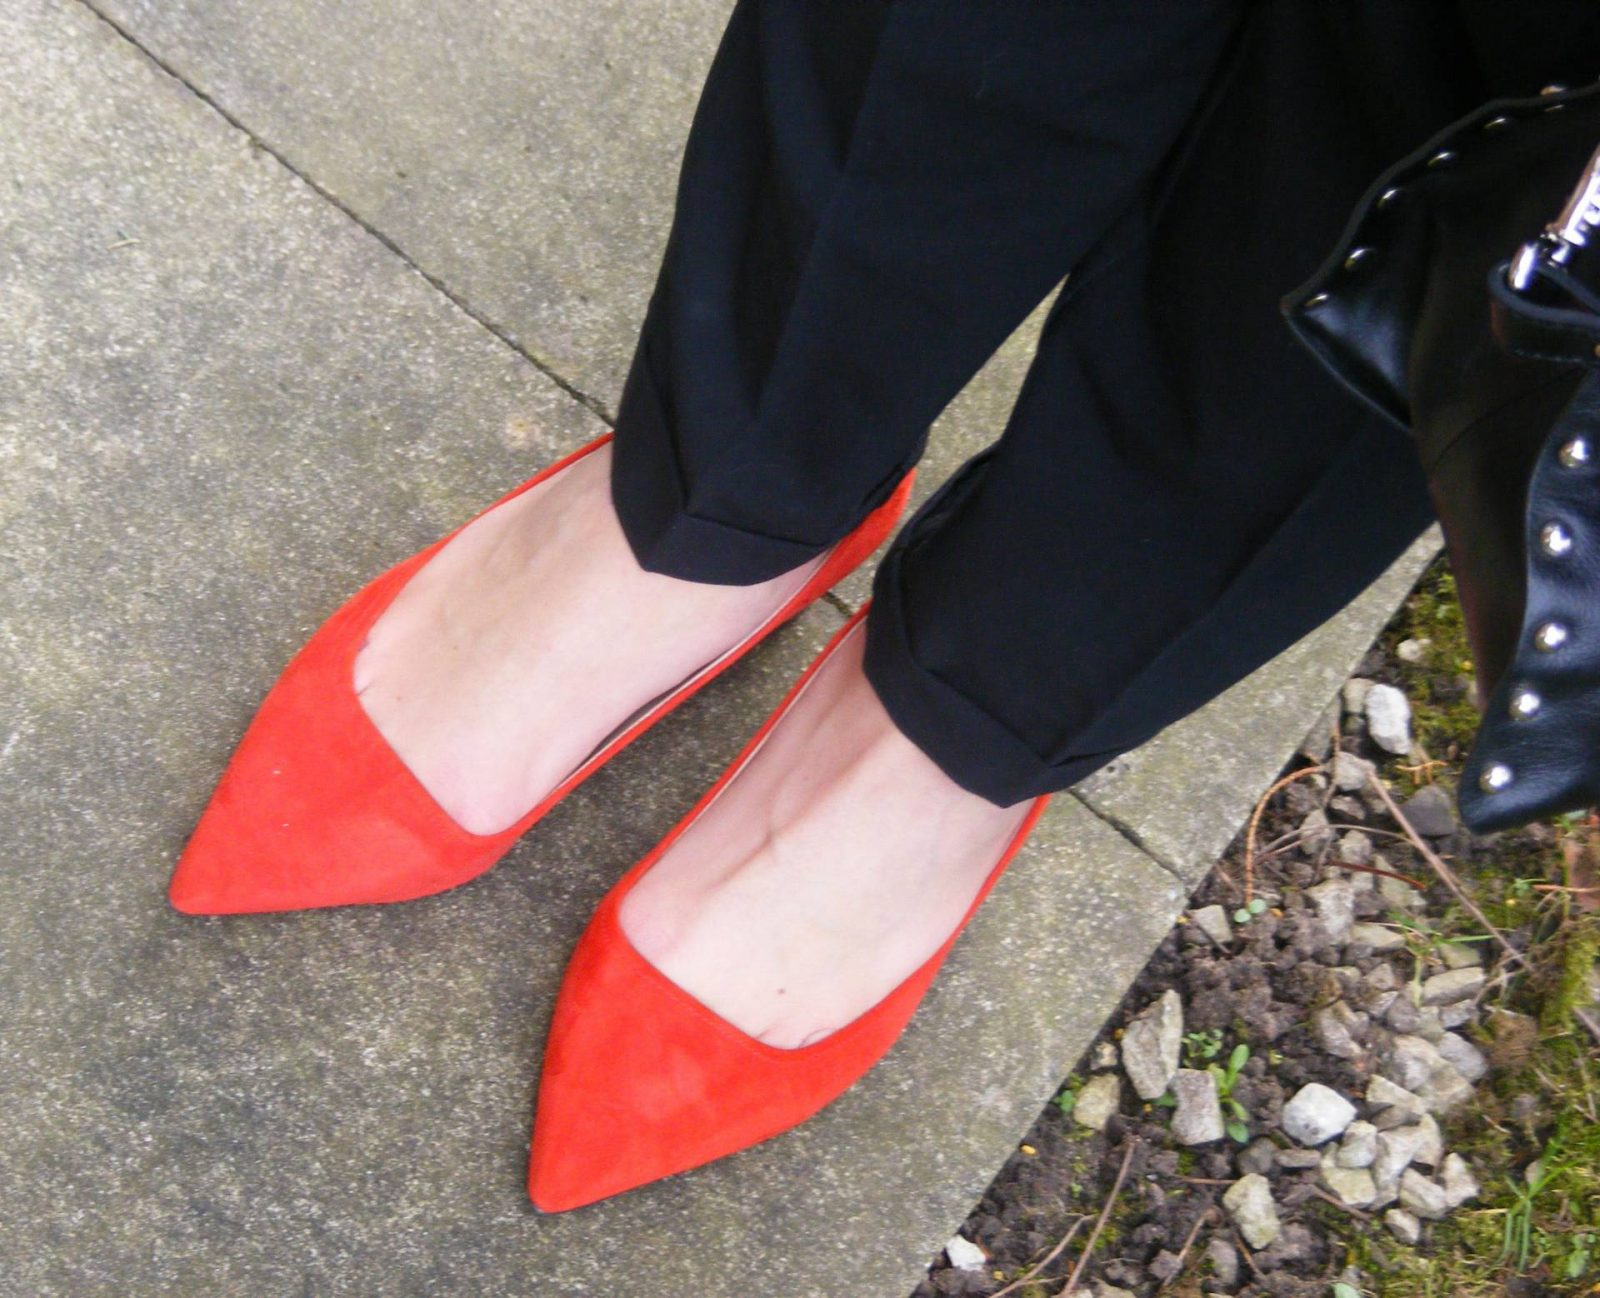 M&S red suede shoes